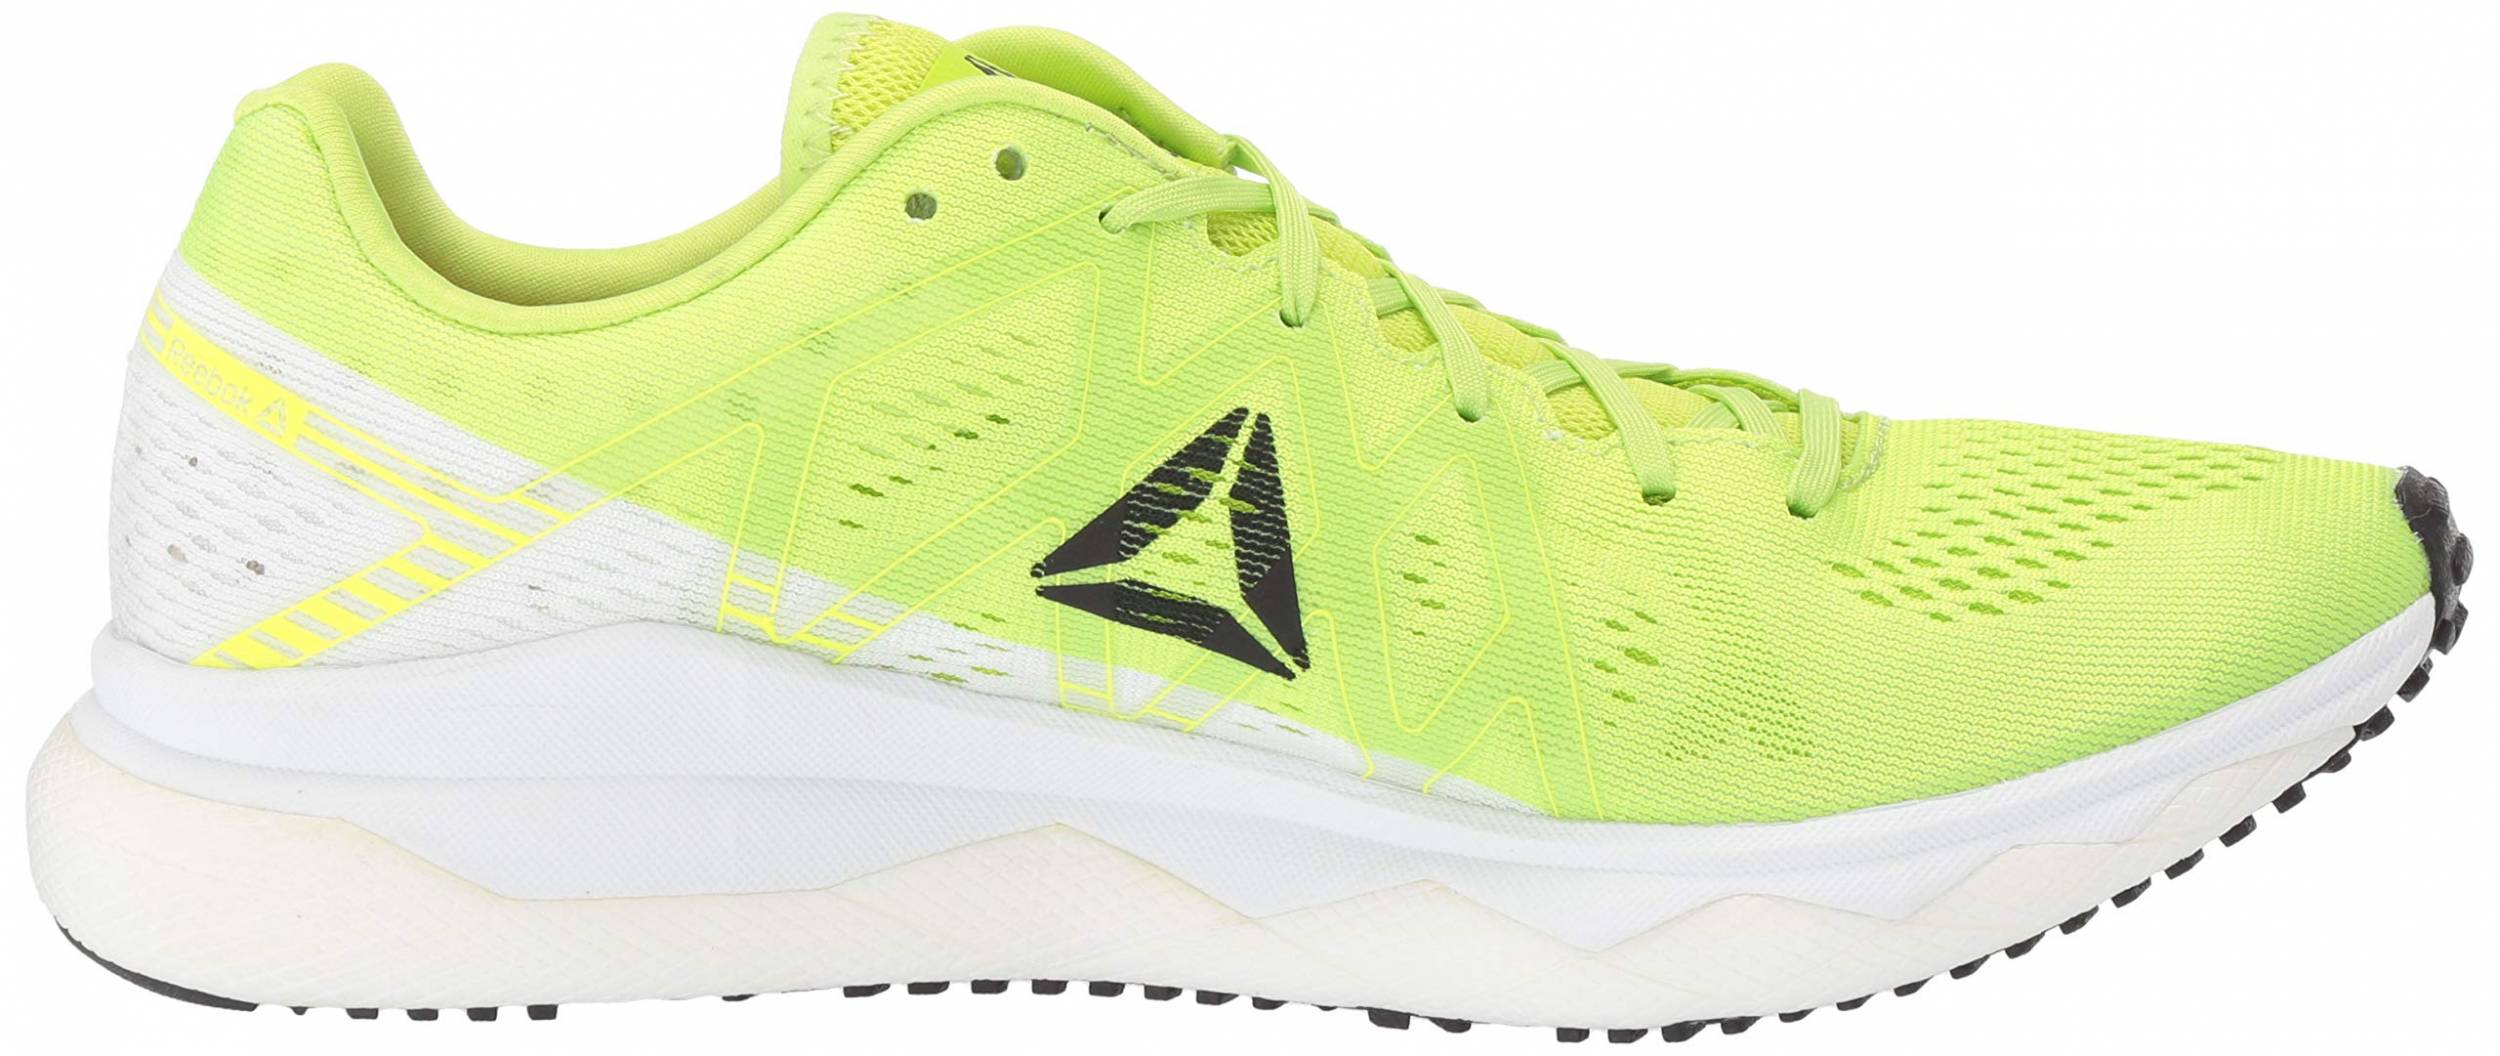 Save 56% on Reebok Running Shoes (120